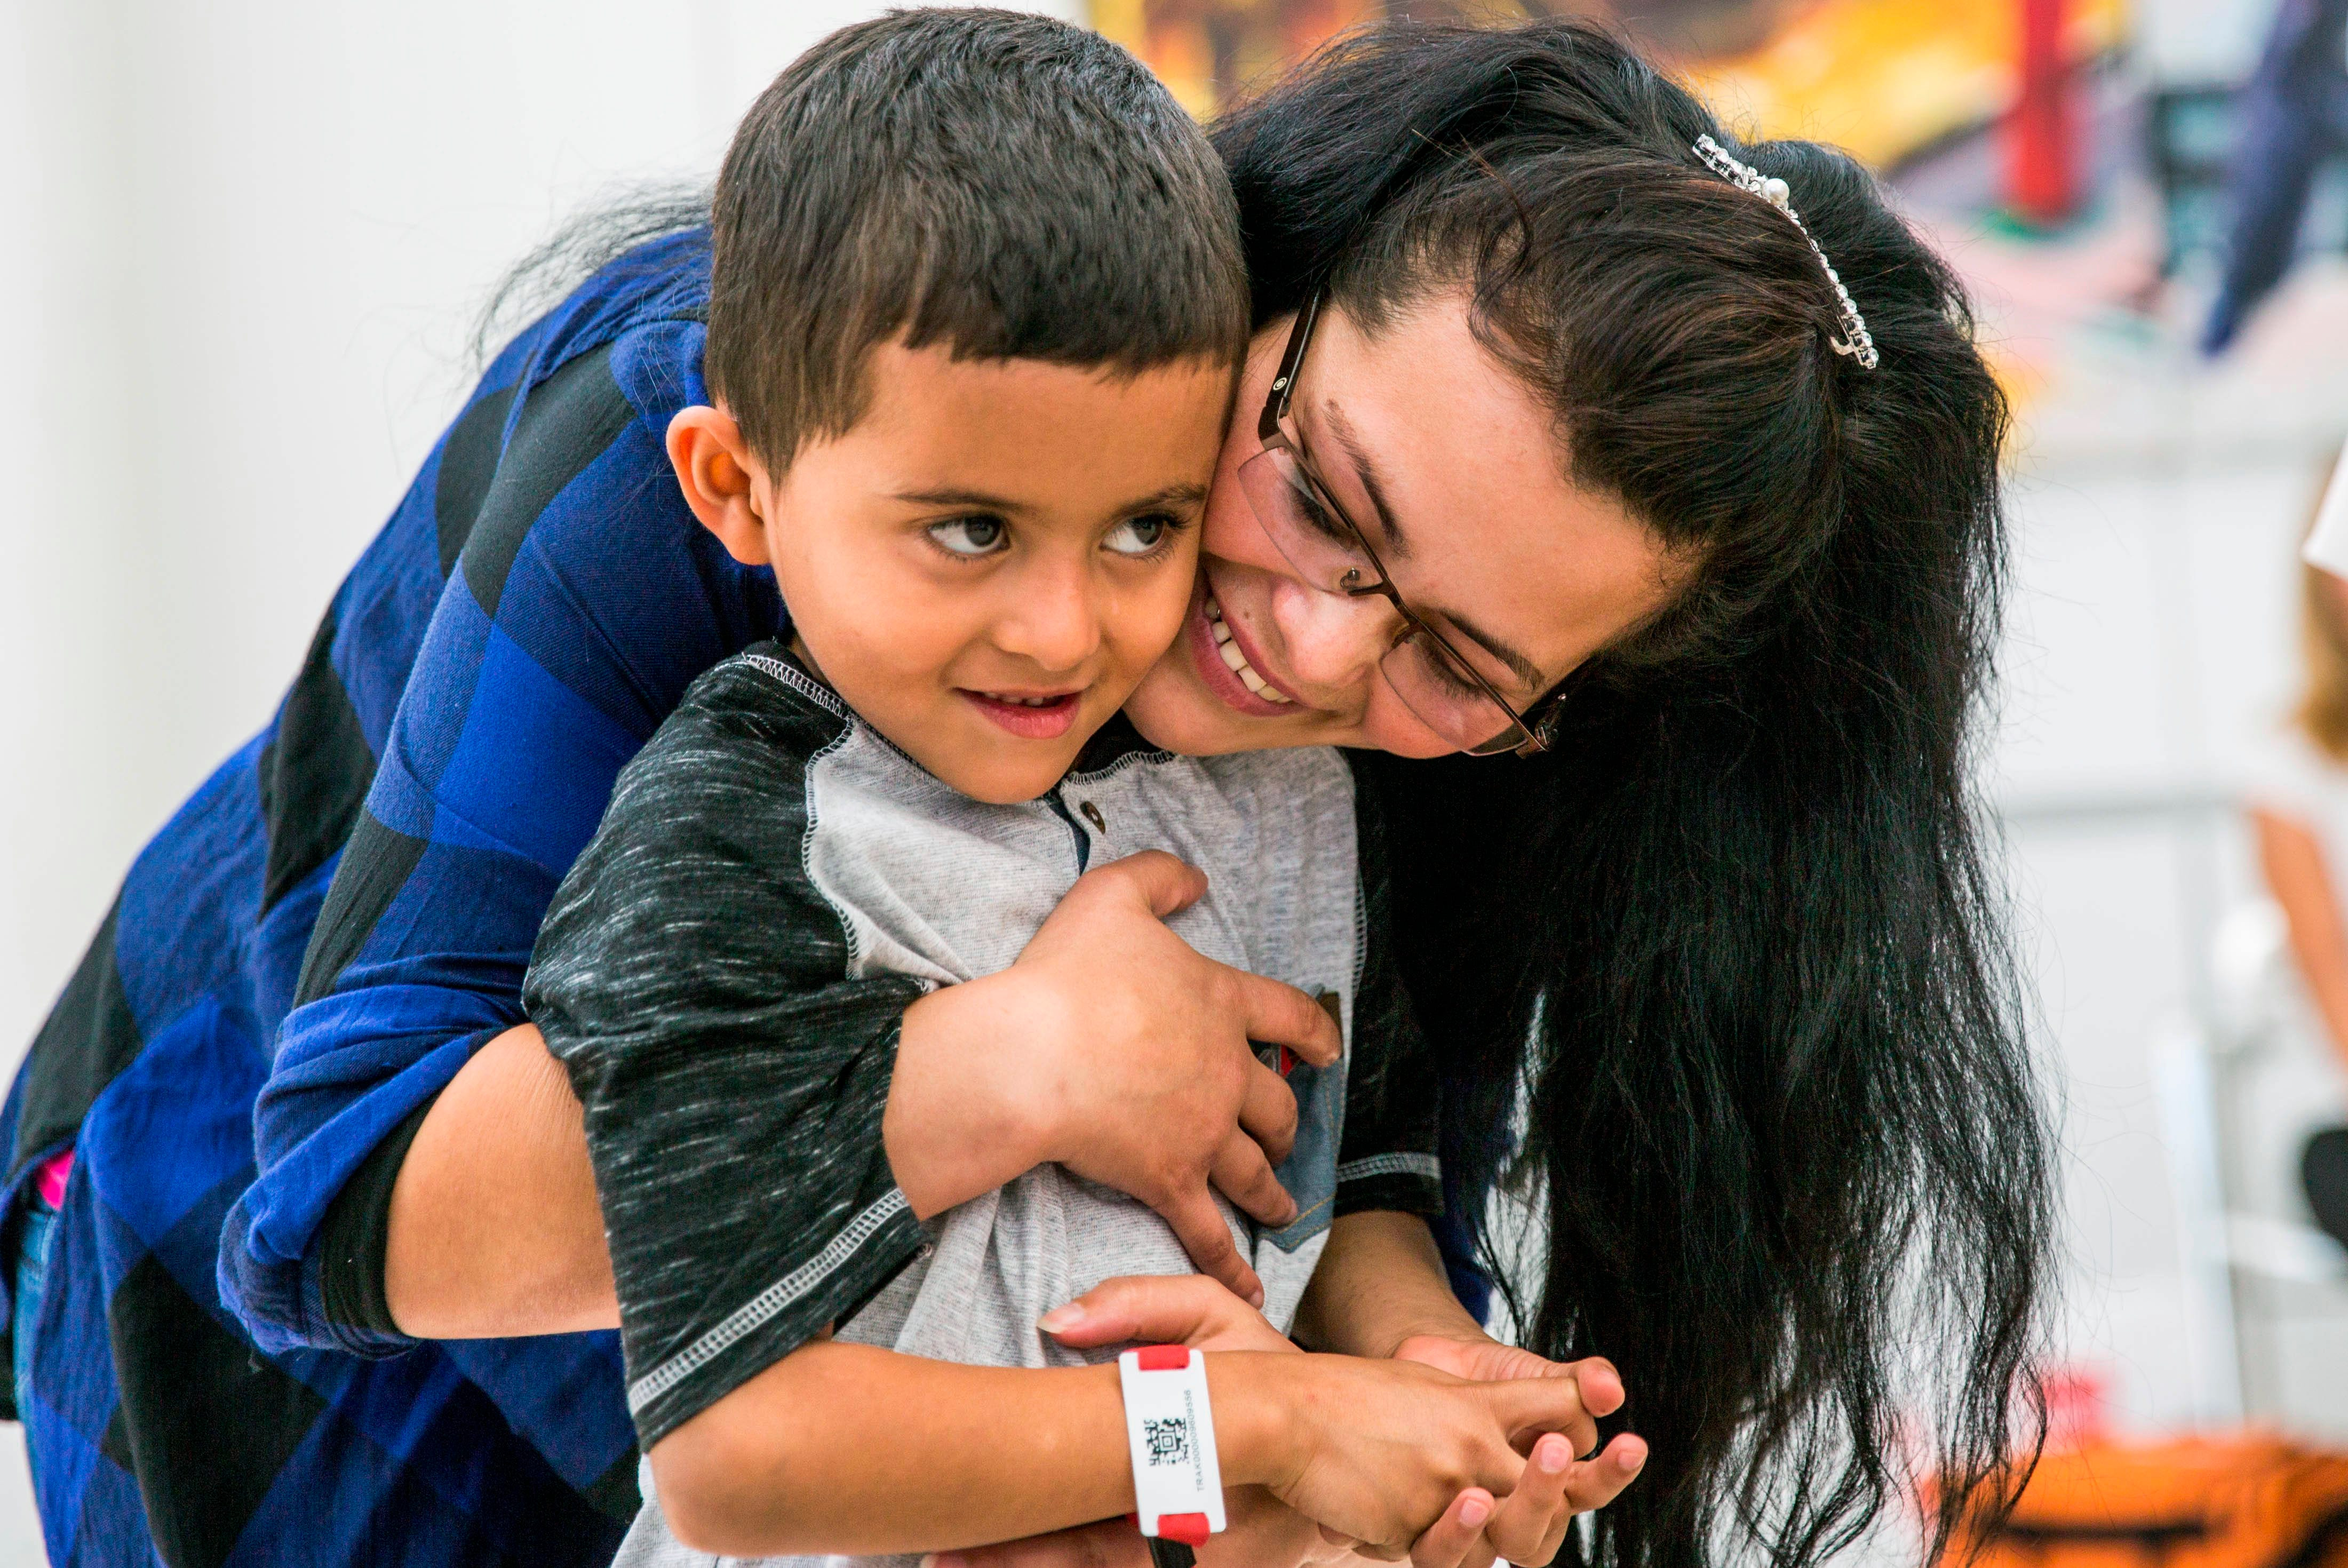 Shackles, skimpy meals and late-night bus rides: Journey of a migrant mother newly reunited with her son